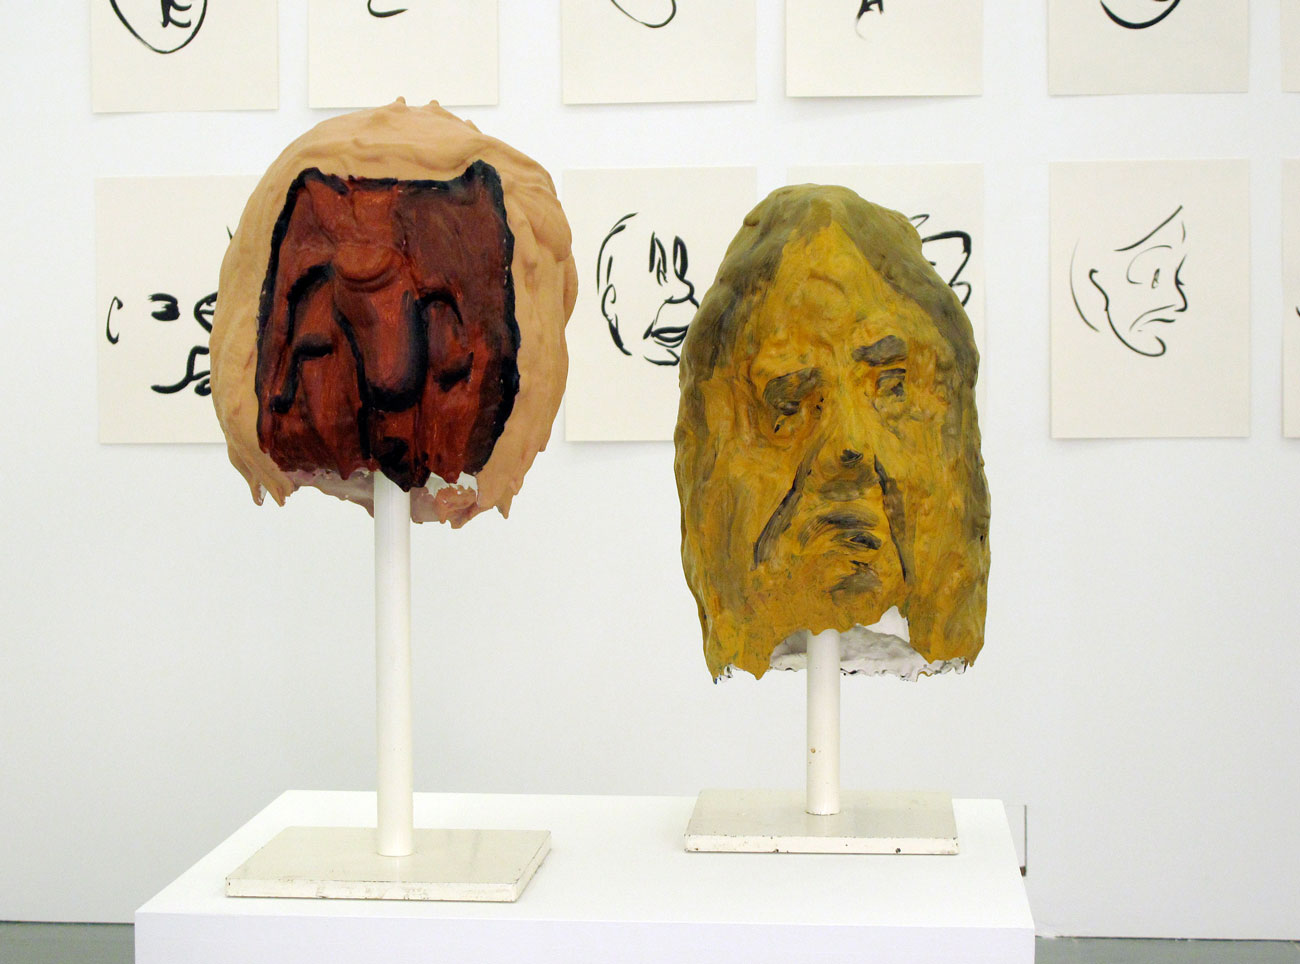 sam-porritt-untitled-(heads)